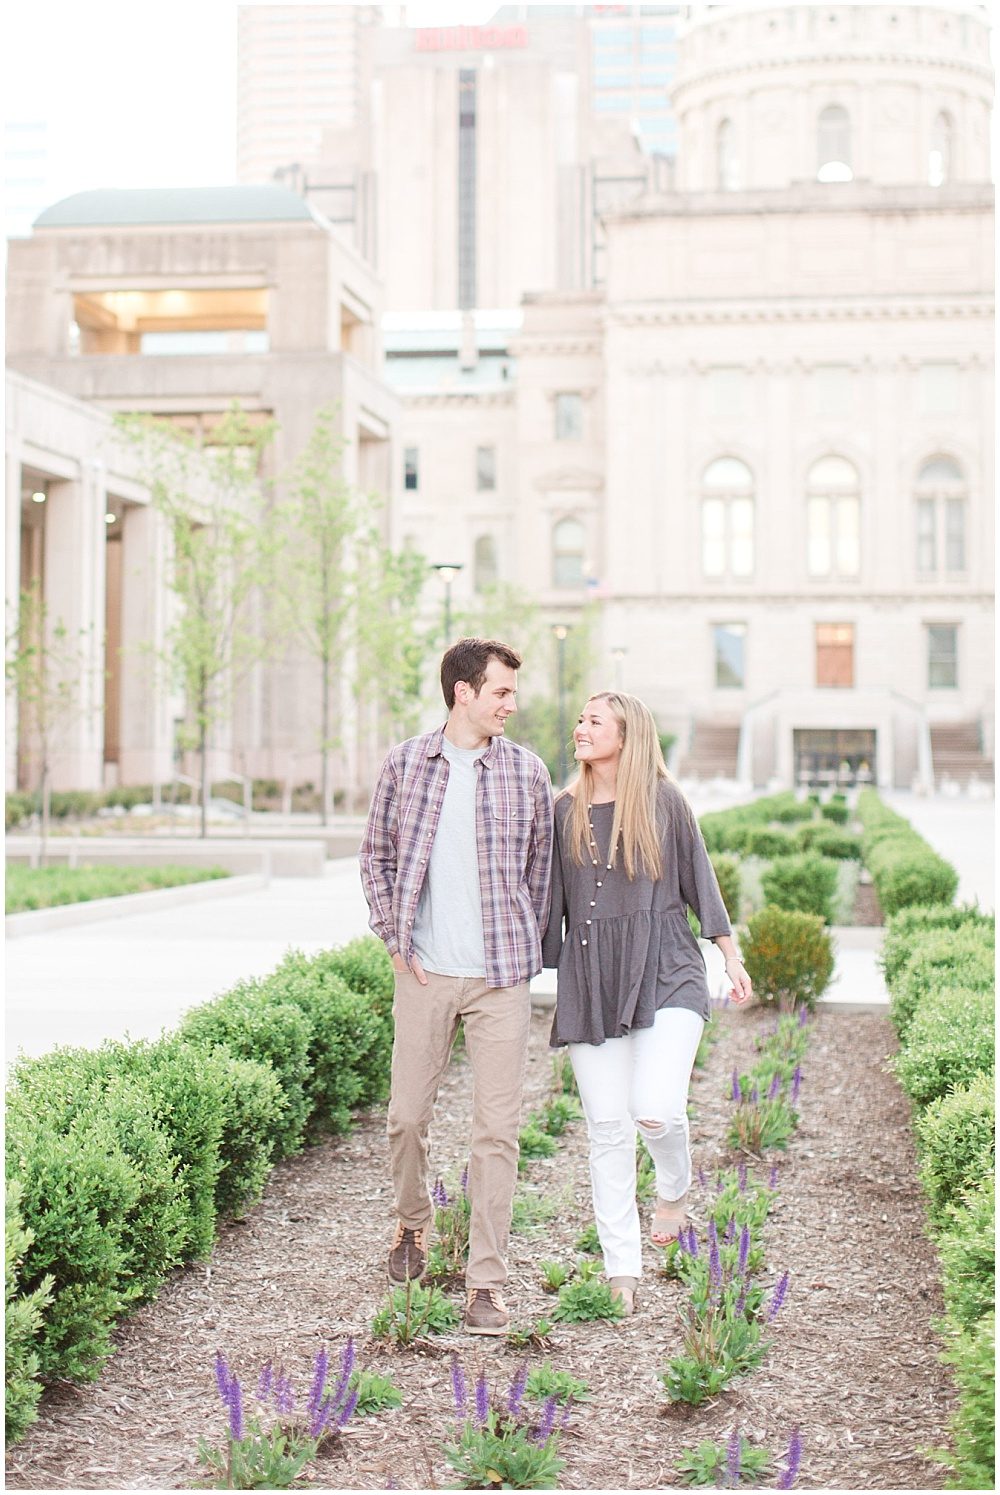 Downtown Indianapolis sunrise engagement session | Sami Renee Photography